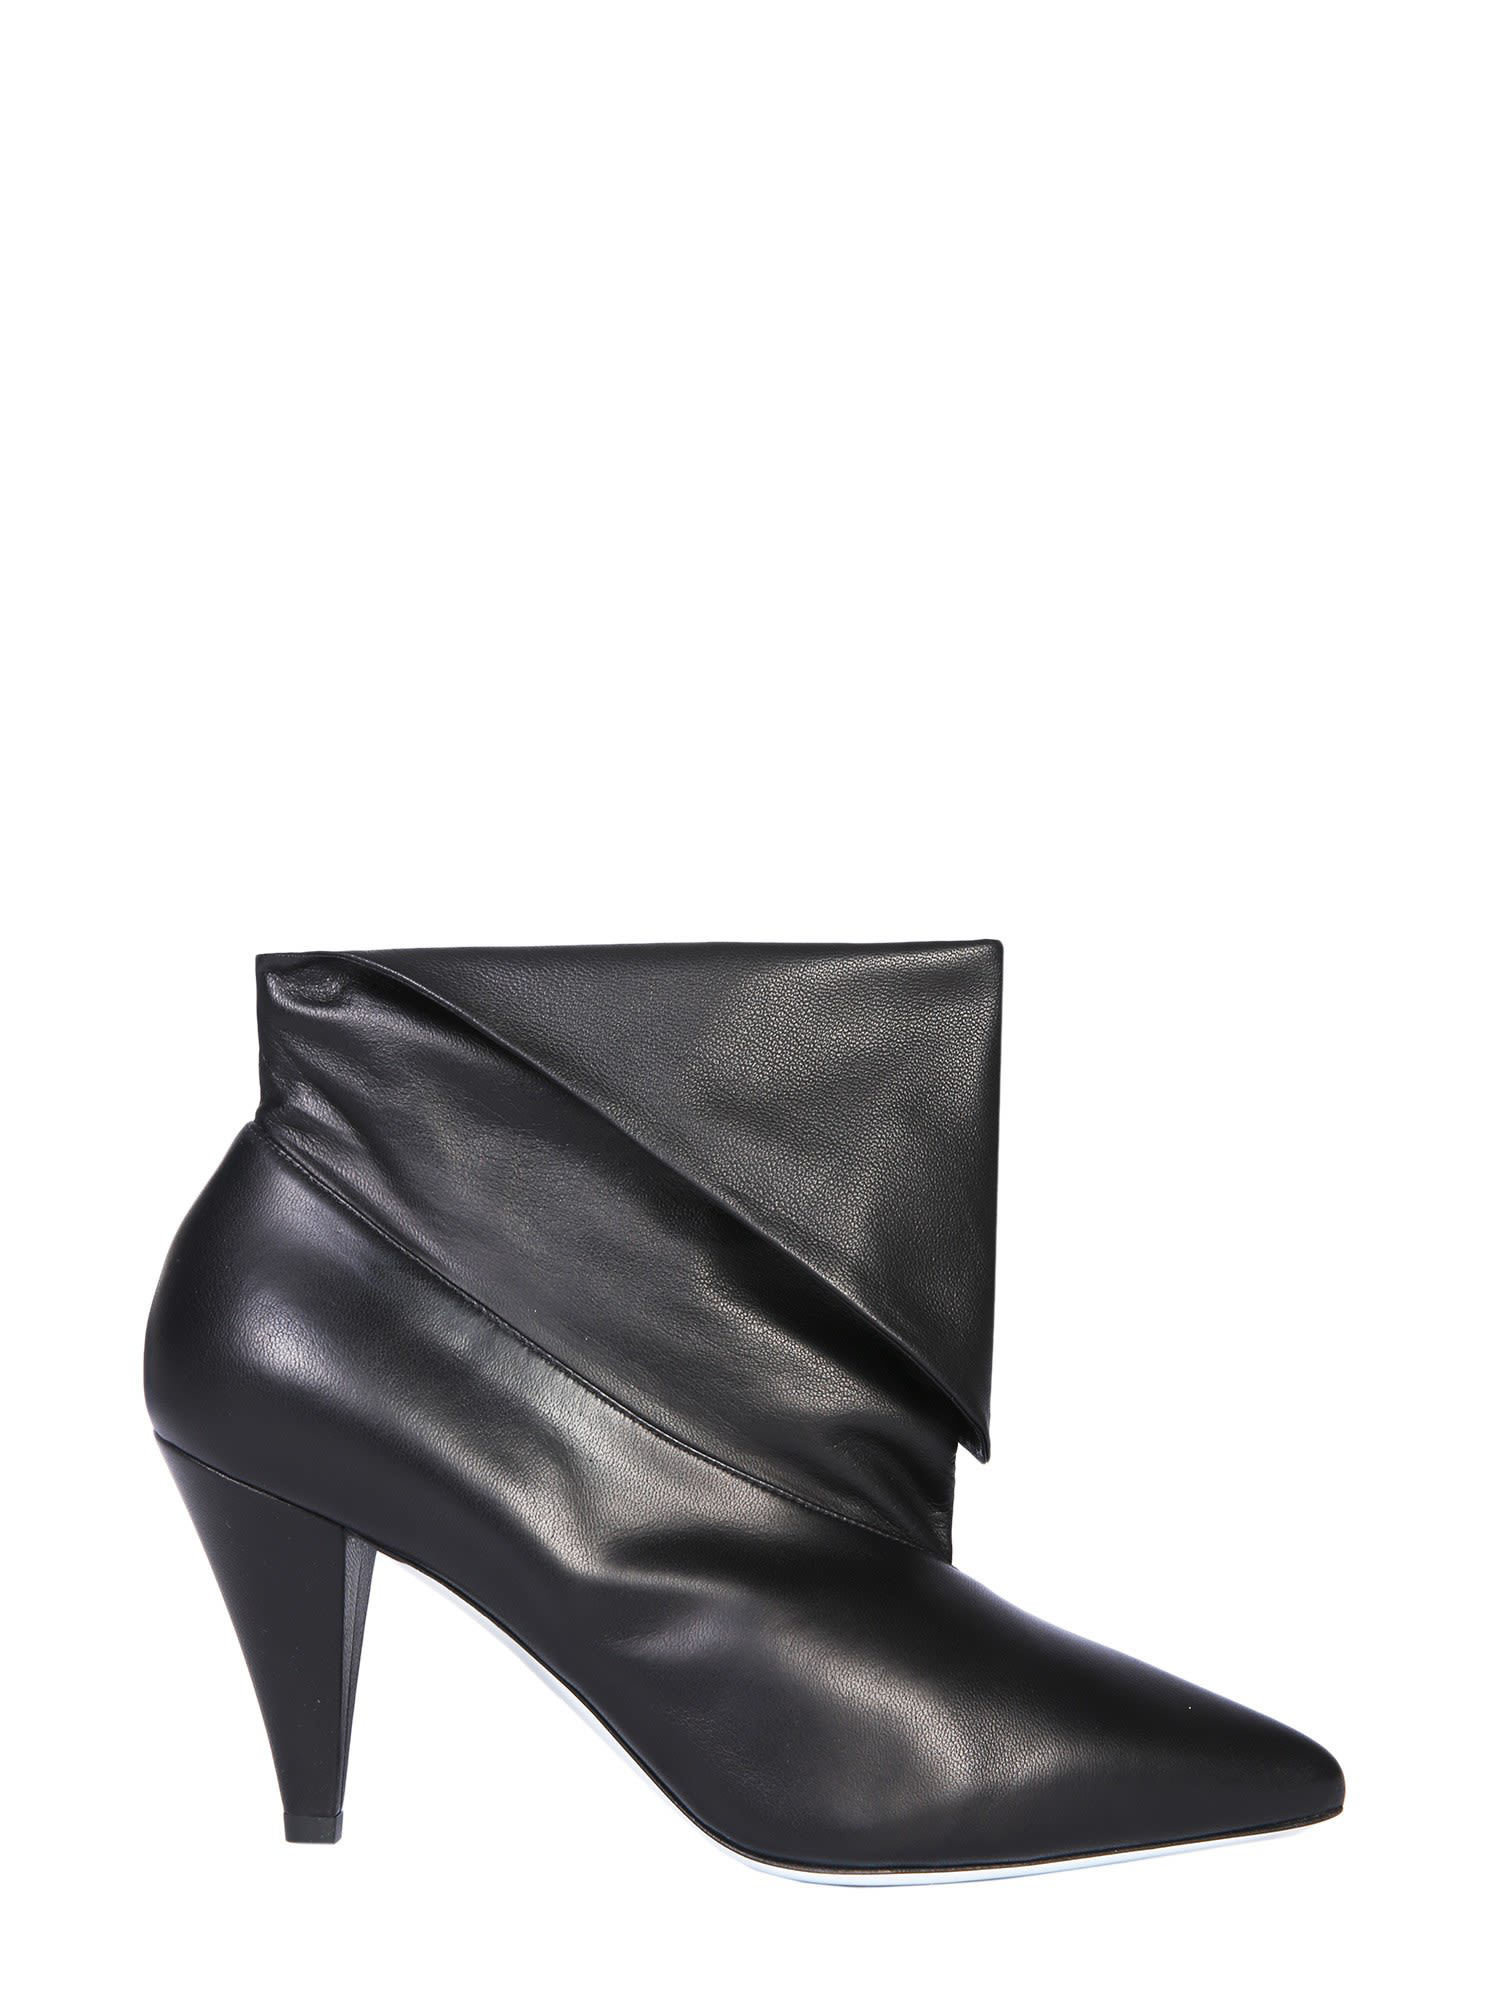 1fa112f7ebca Givenchy Show Leather Folded Cone-Heel Ankle Boots In Black